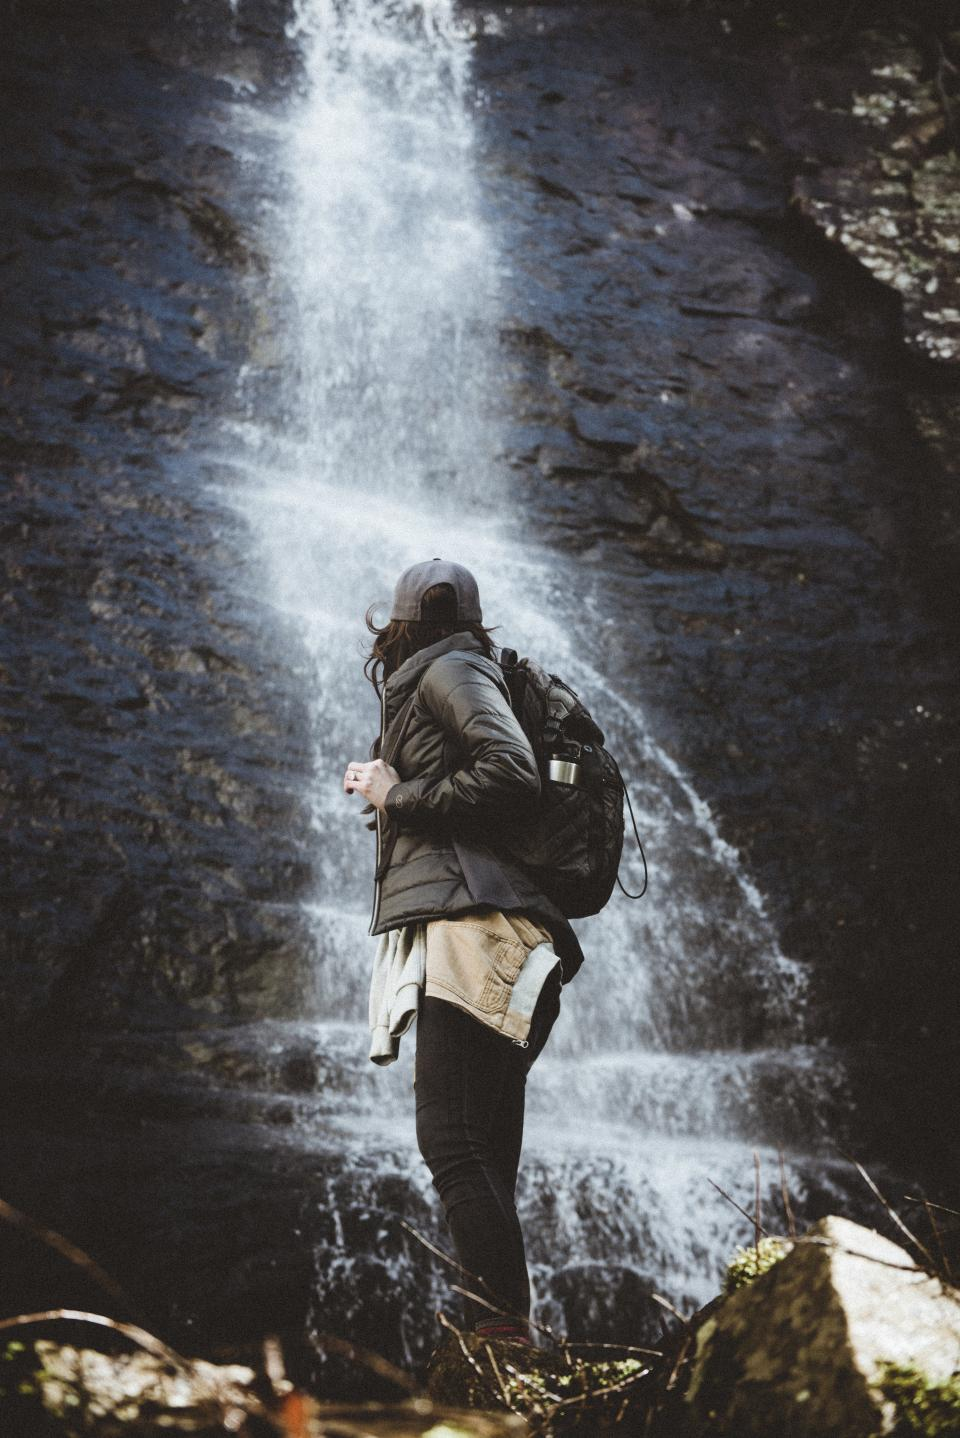 Free stock photo of nature people